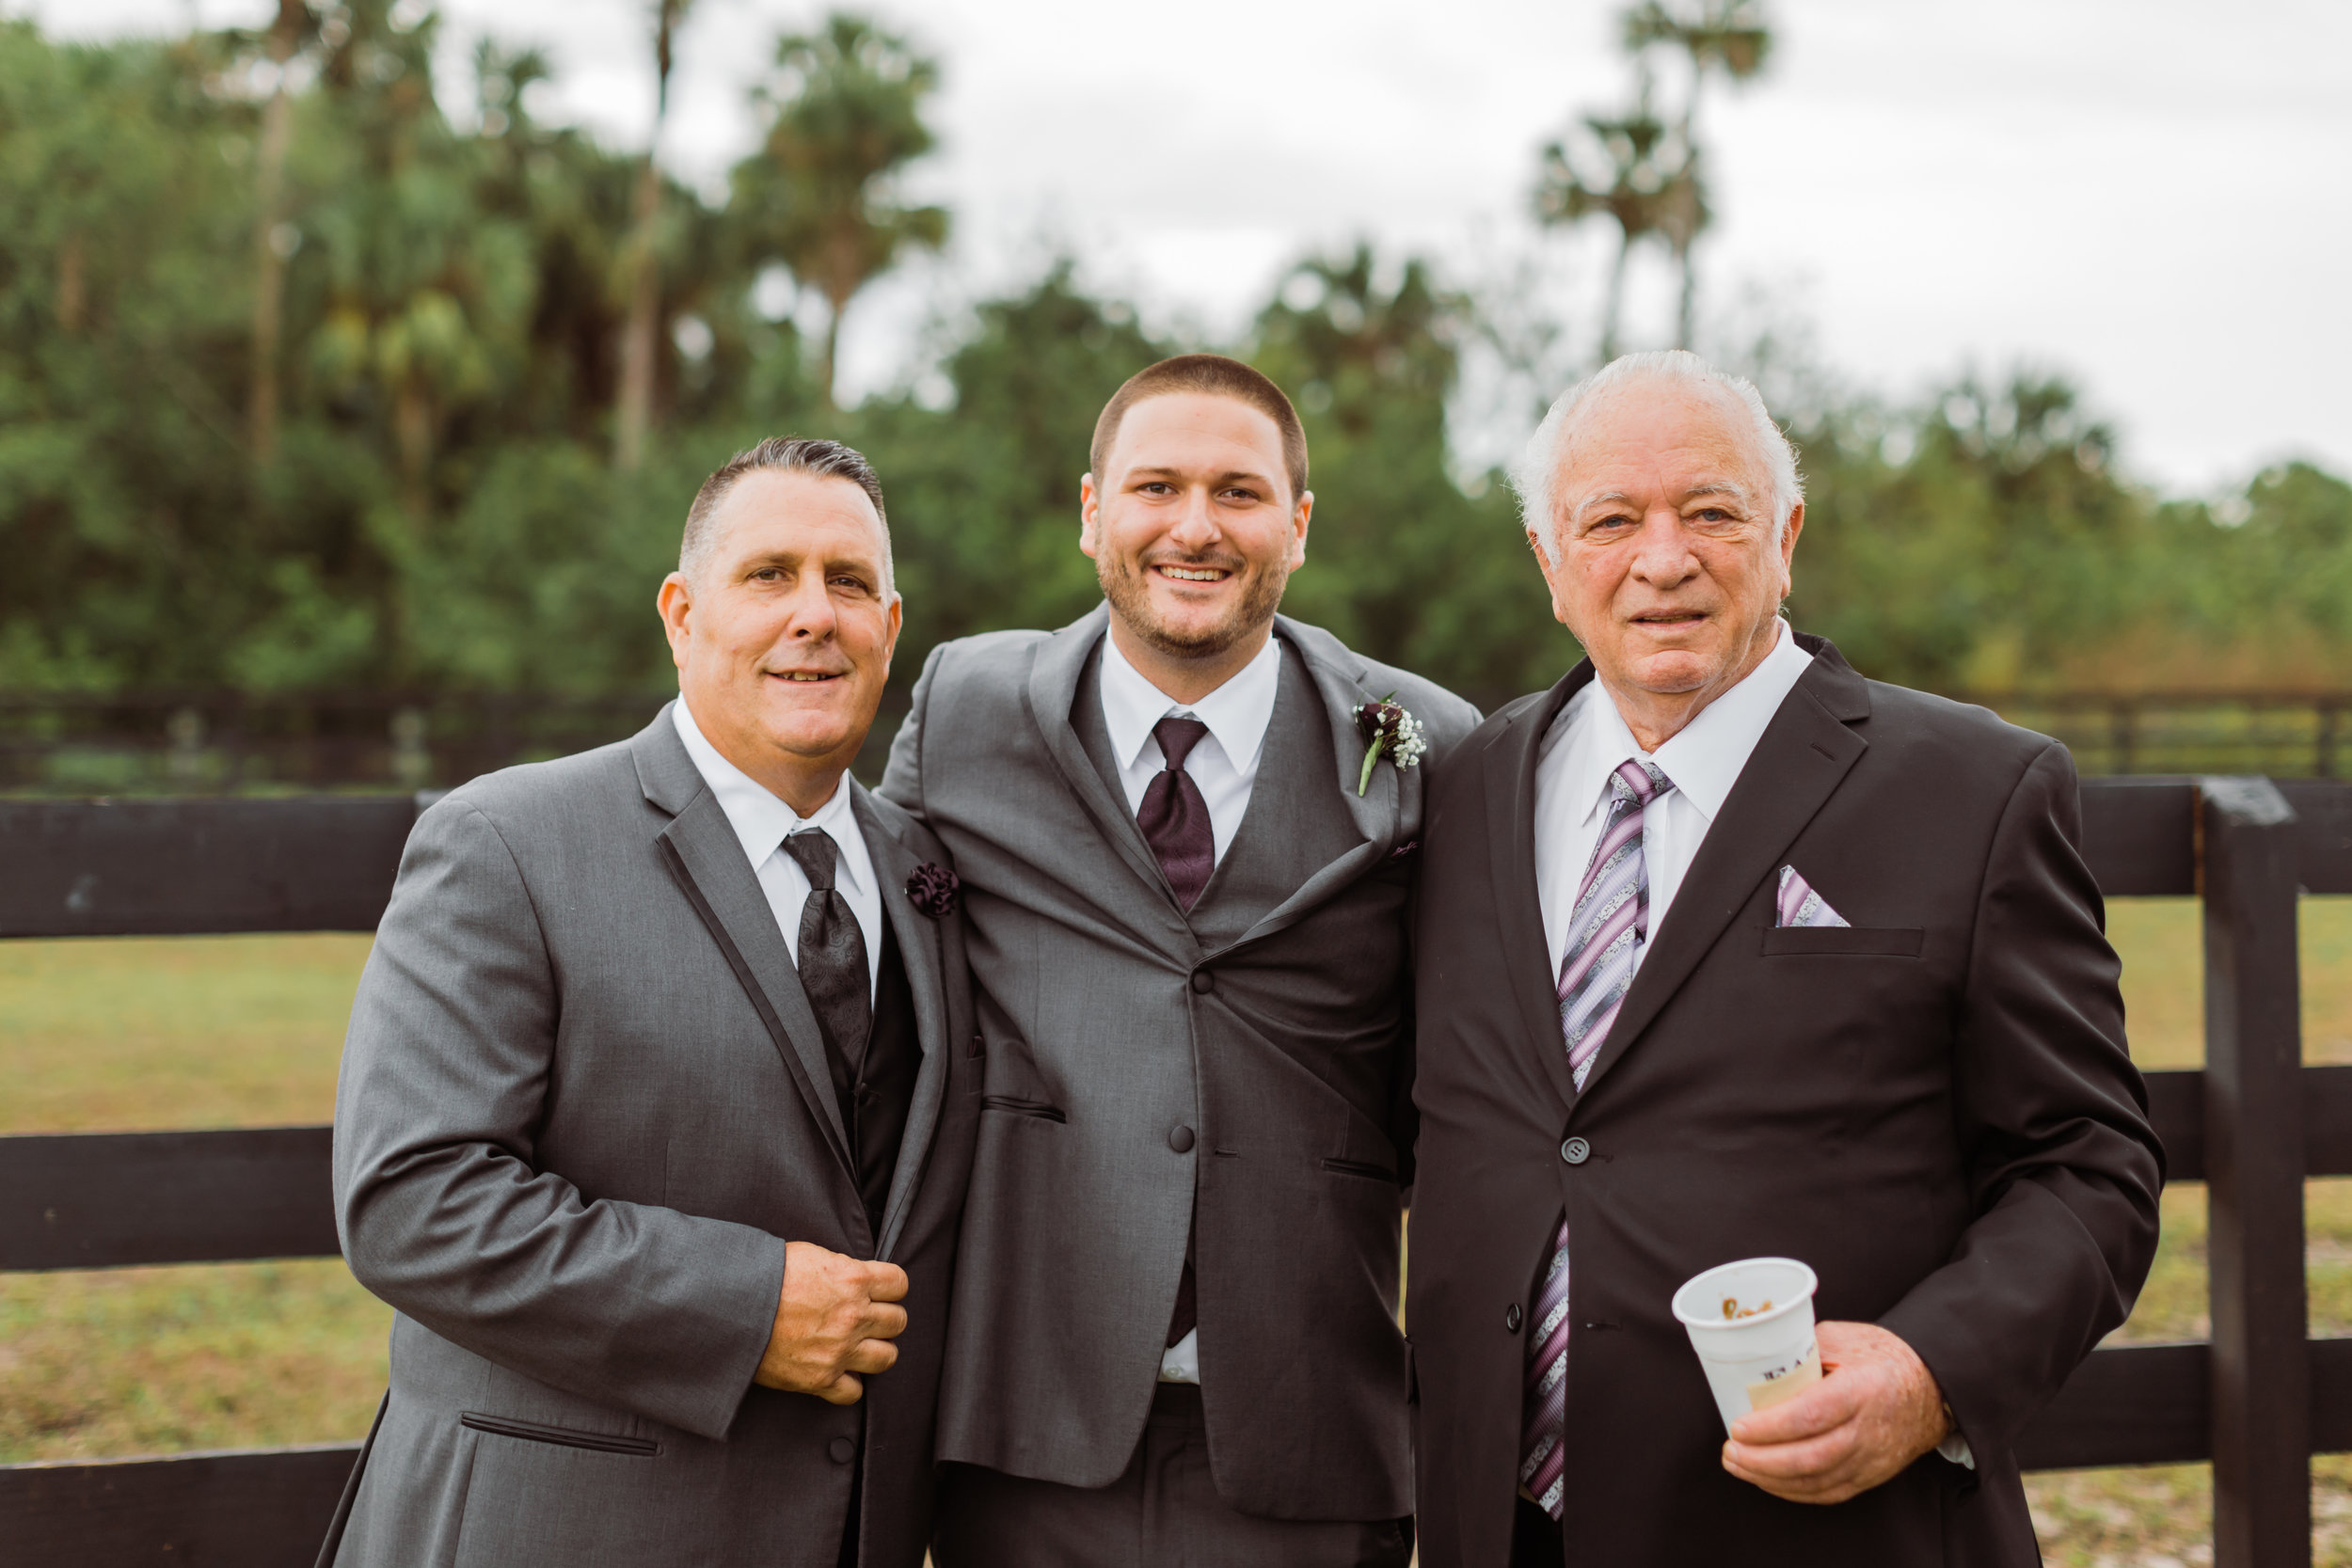 2017.10.28 Lana and Chadd Ragone Sterling Stables Cocoa Wedding (273 of 986).jpg